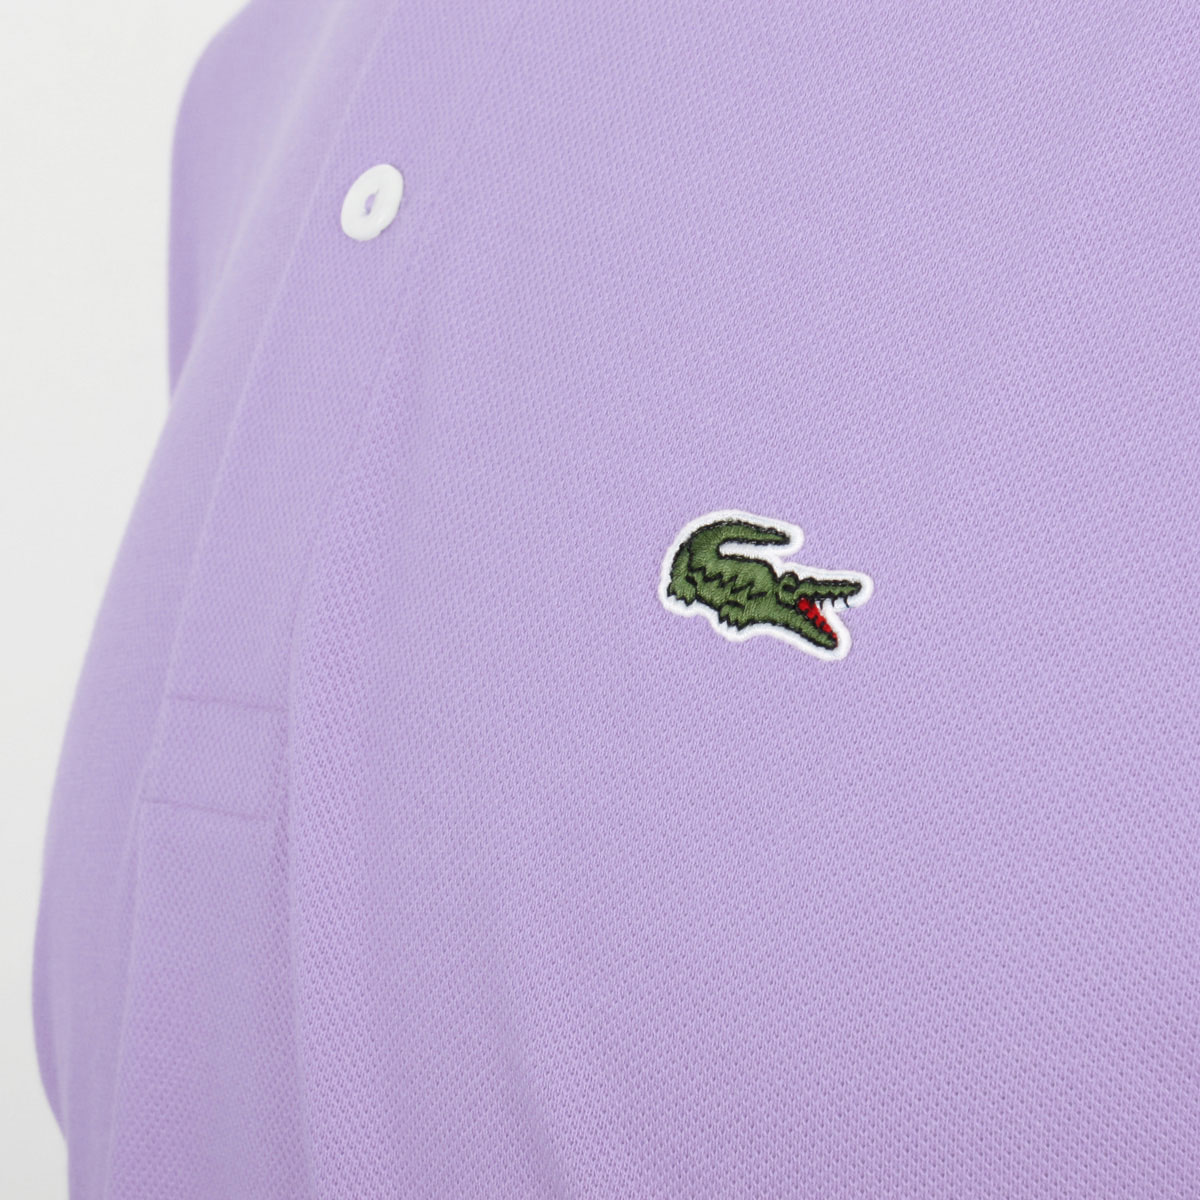 Lacoste-Mens-Classic-Cotton-L1212-Short-Sleeve-Polo-Shirt-26-OFF-RRP thumbnail 6